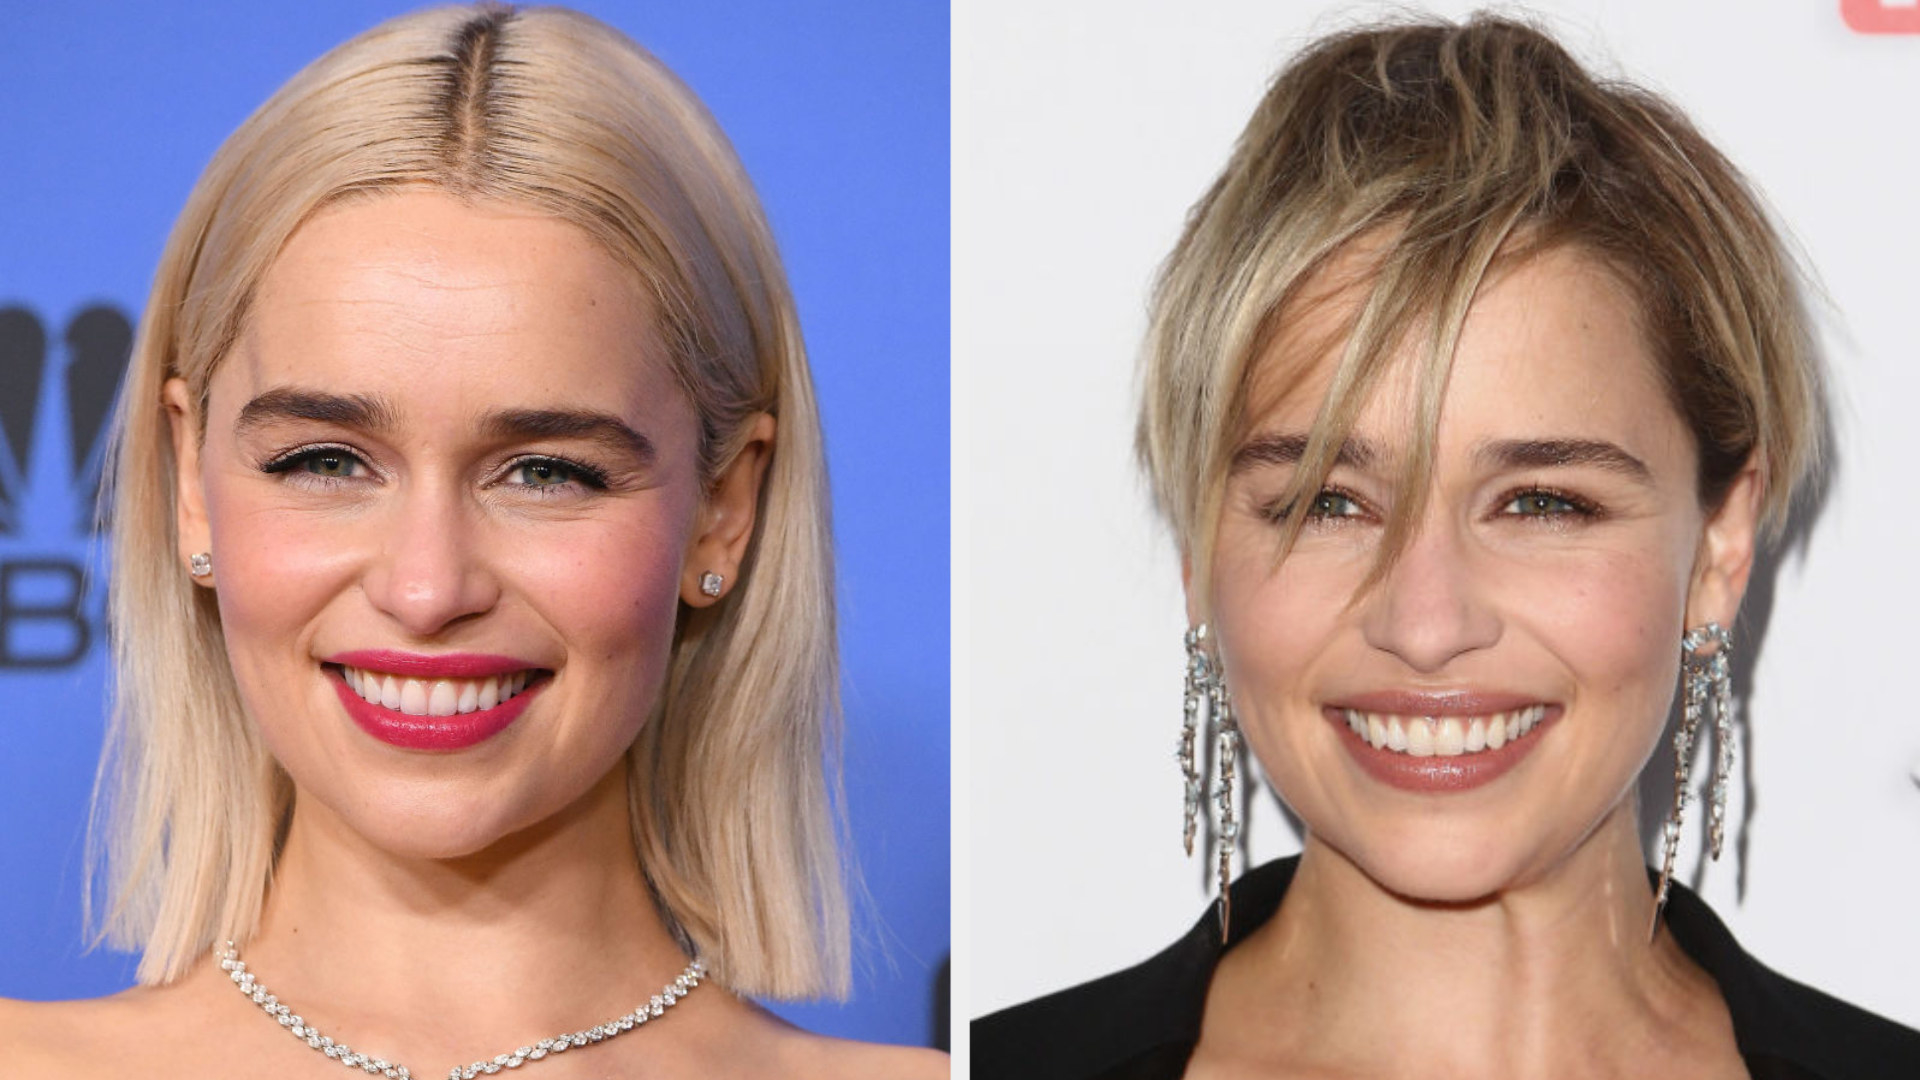 Emilia Clarke with a short platinum bob and with a shaggy pixie cut